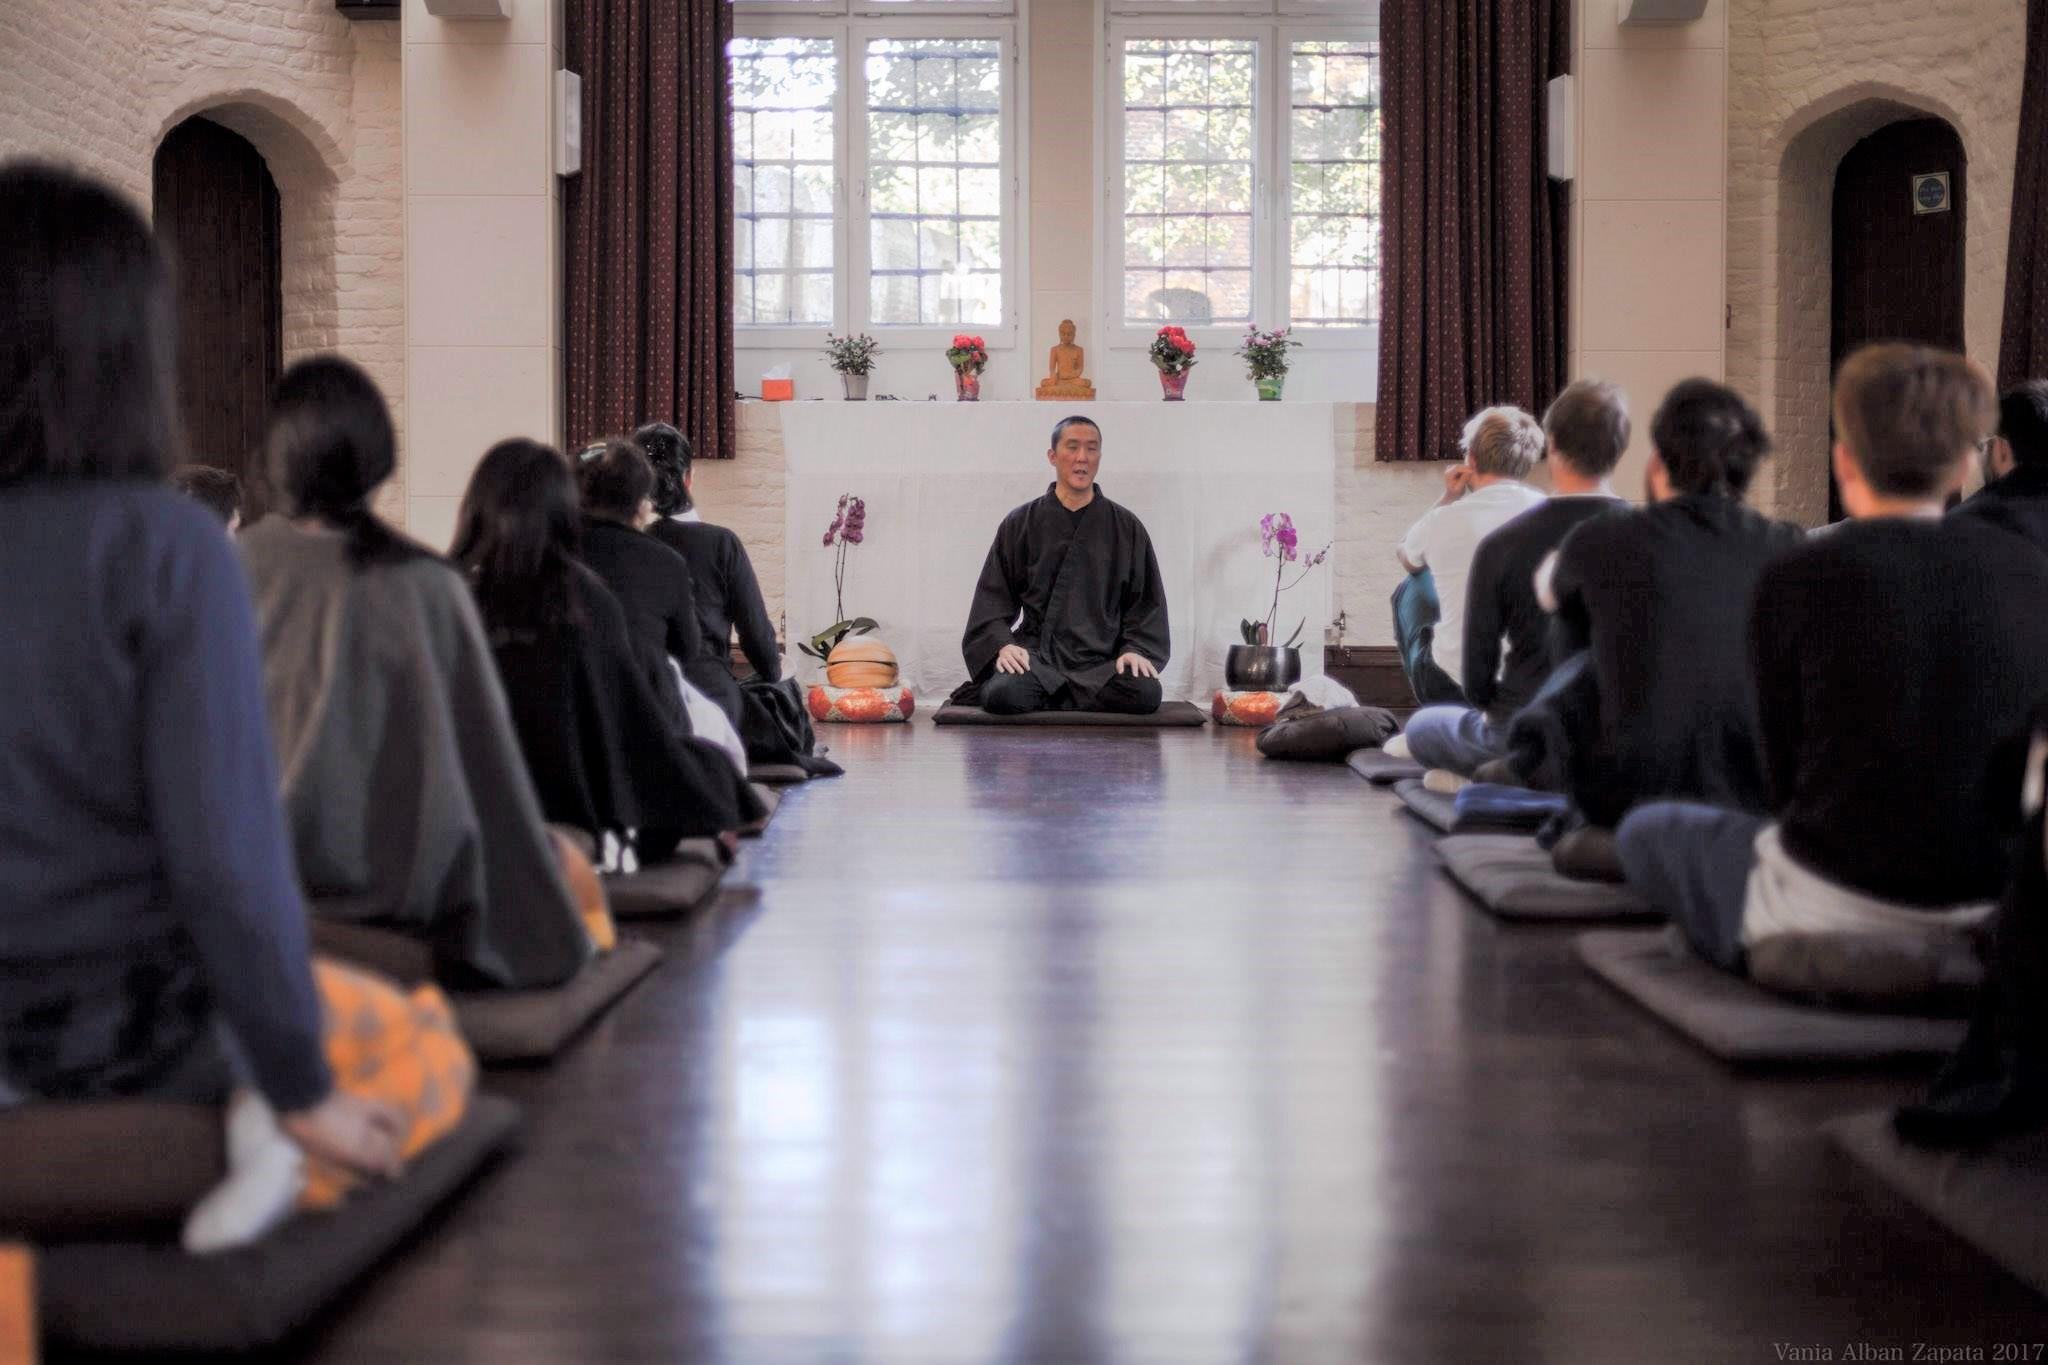 Group Chan Meditation (temporarily suspended due to coronavirus outbreak)